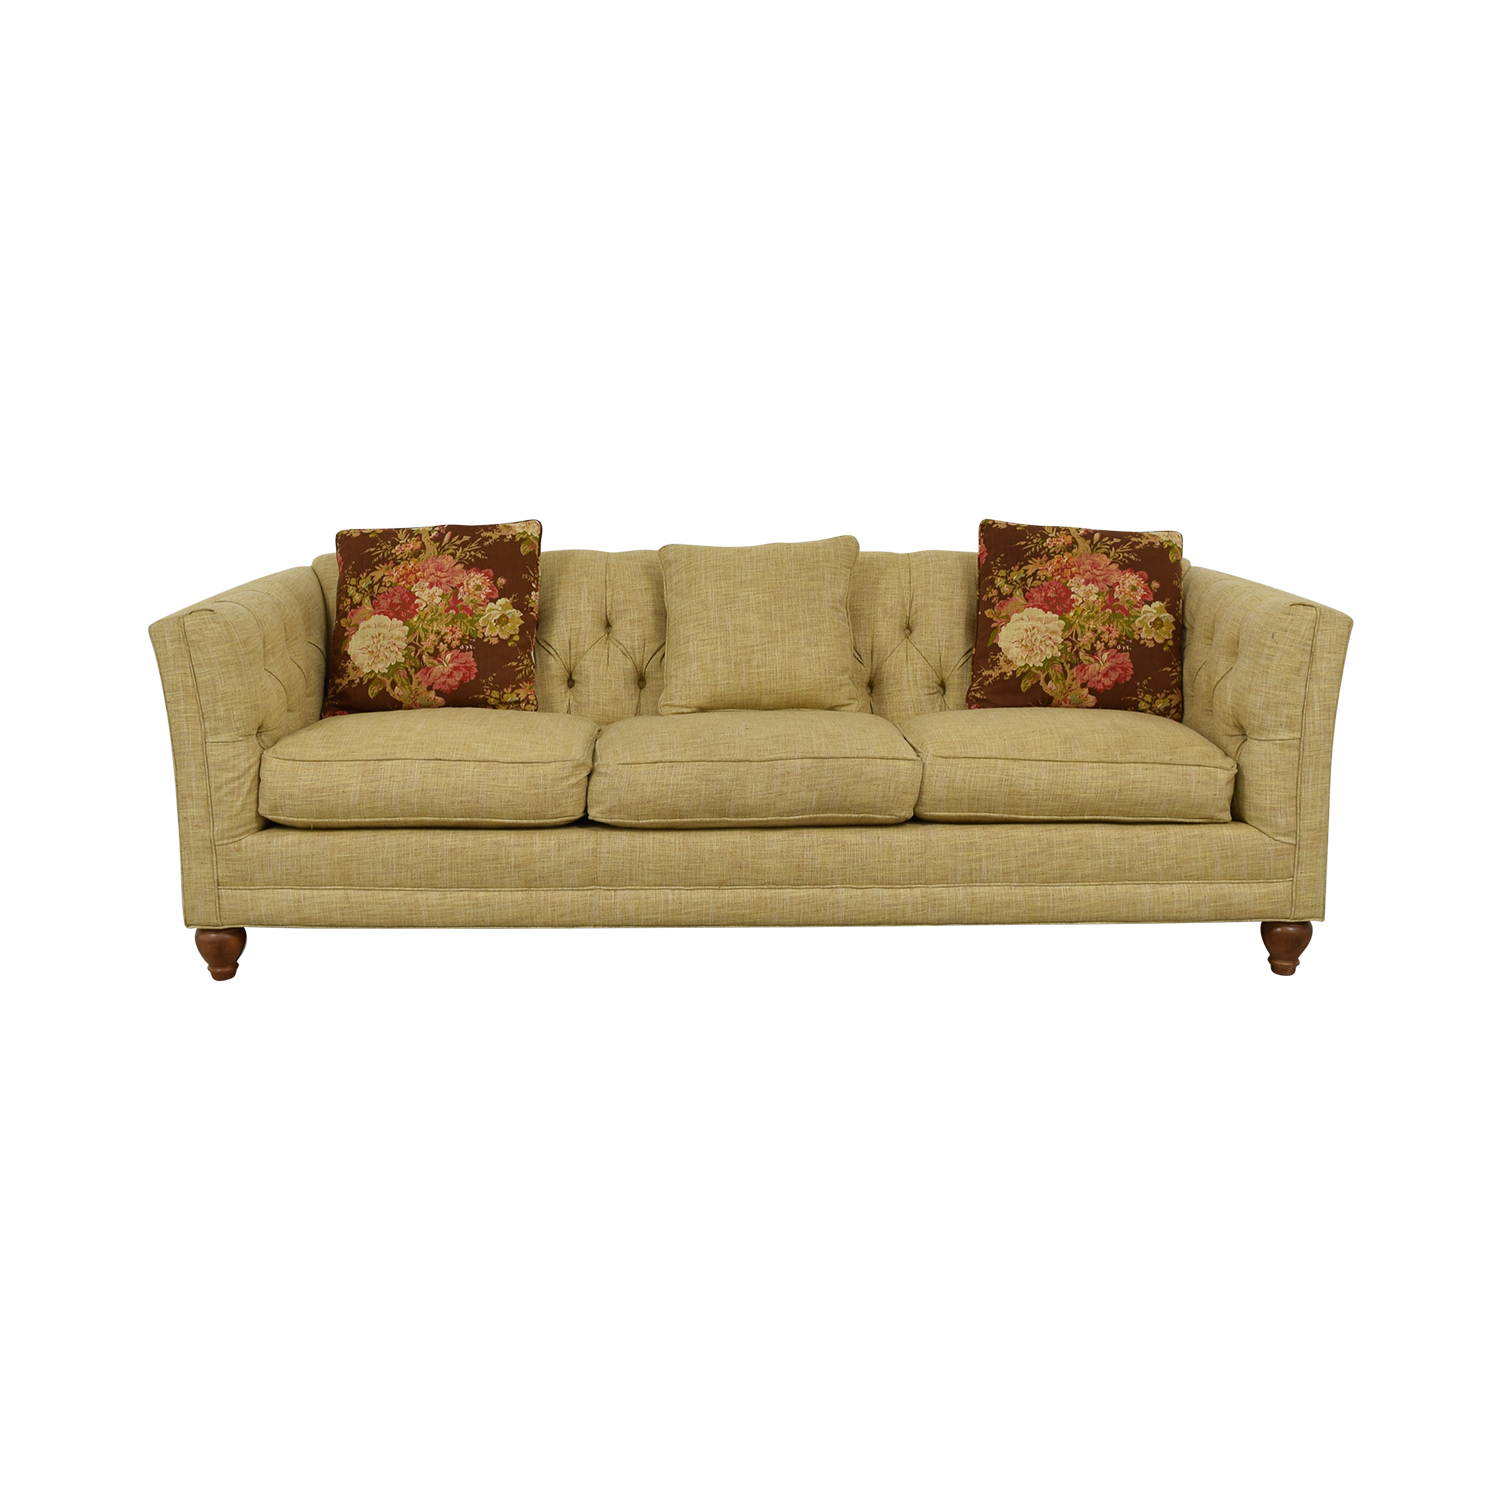 Country Willow Country Willow Tan Three-Cushion Sofa second hand